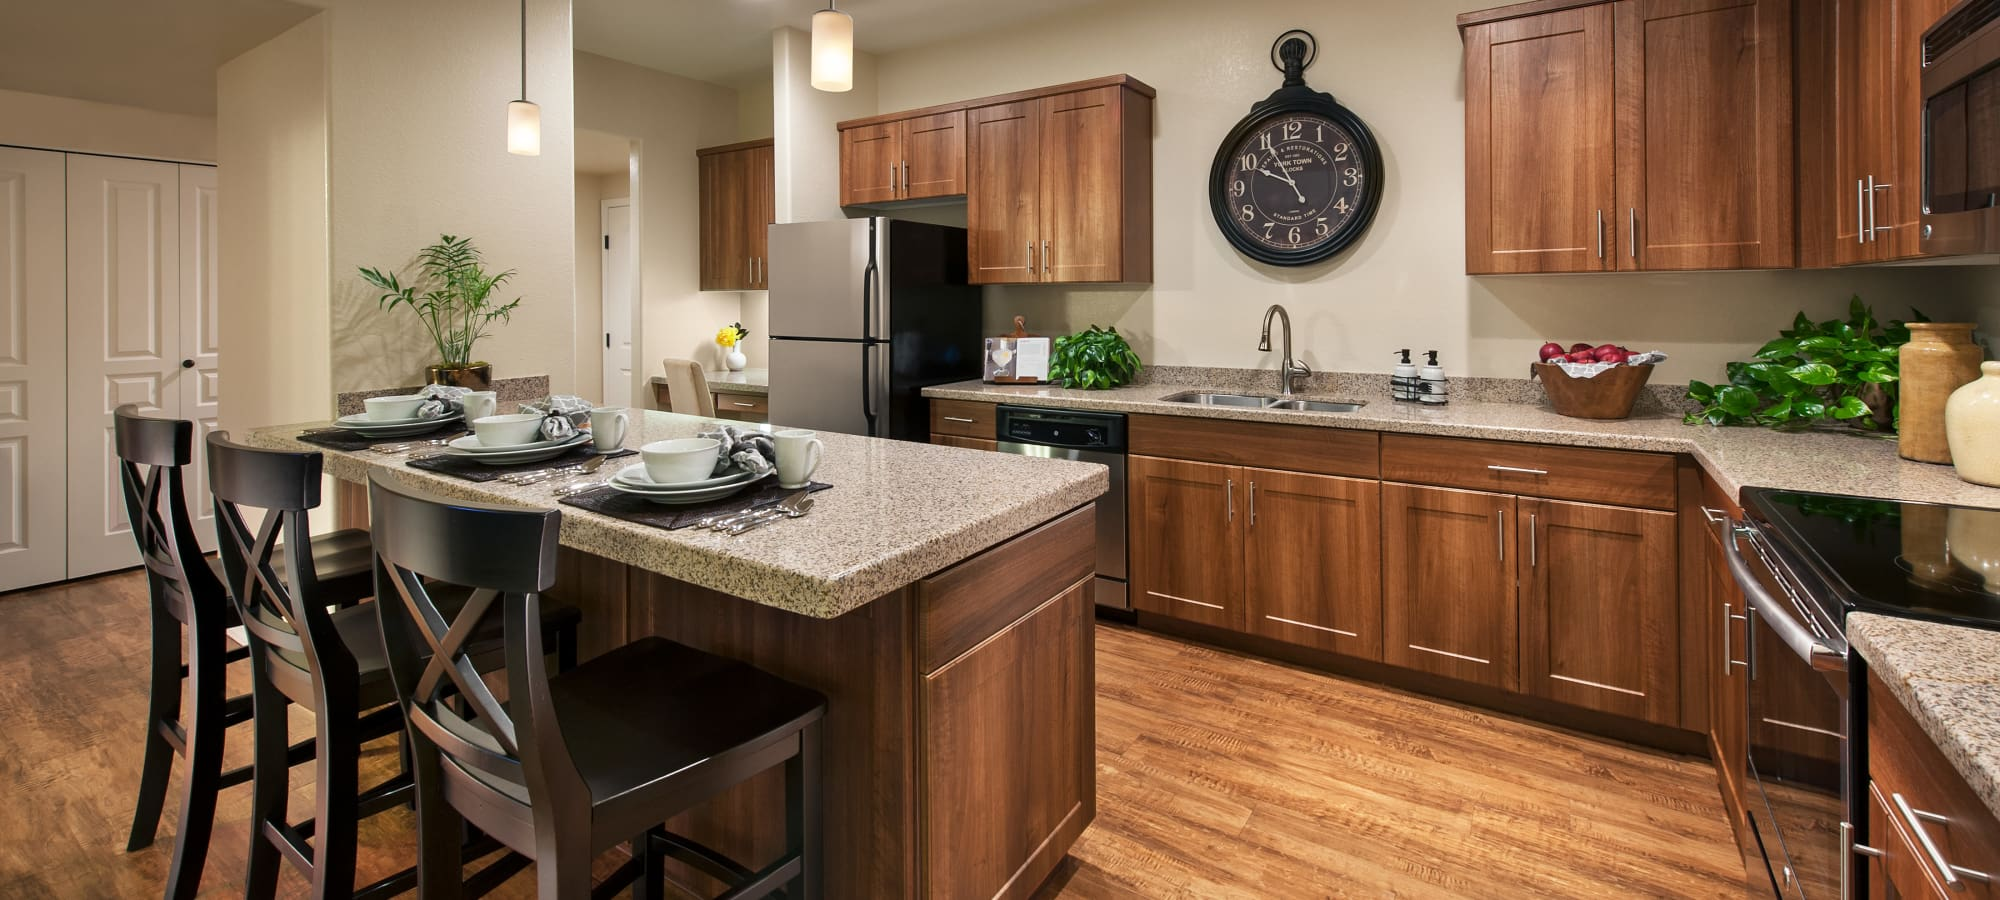 Kitchen with island and hardwood floors in model home at San Paseo in Phoenix, Arizona